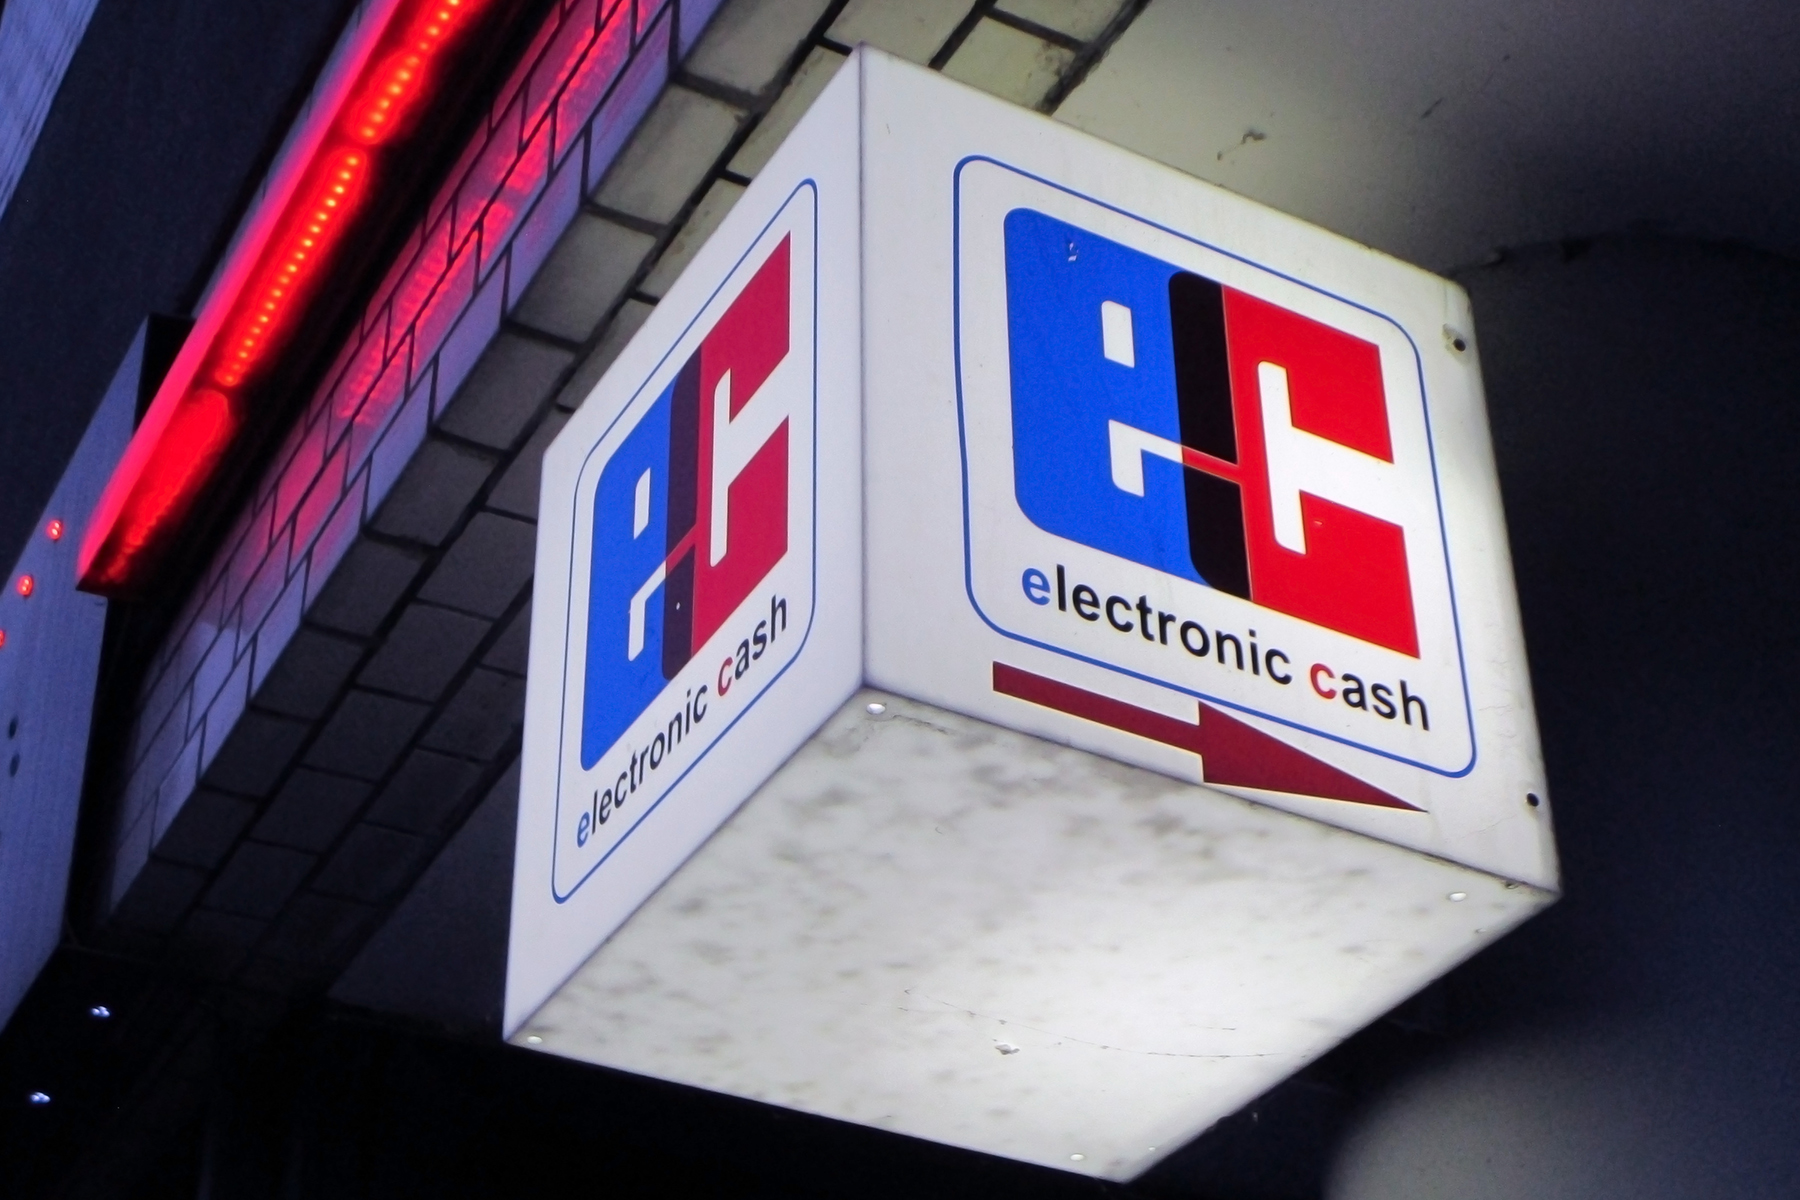 An electronic cash sign in Berlin